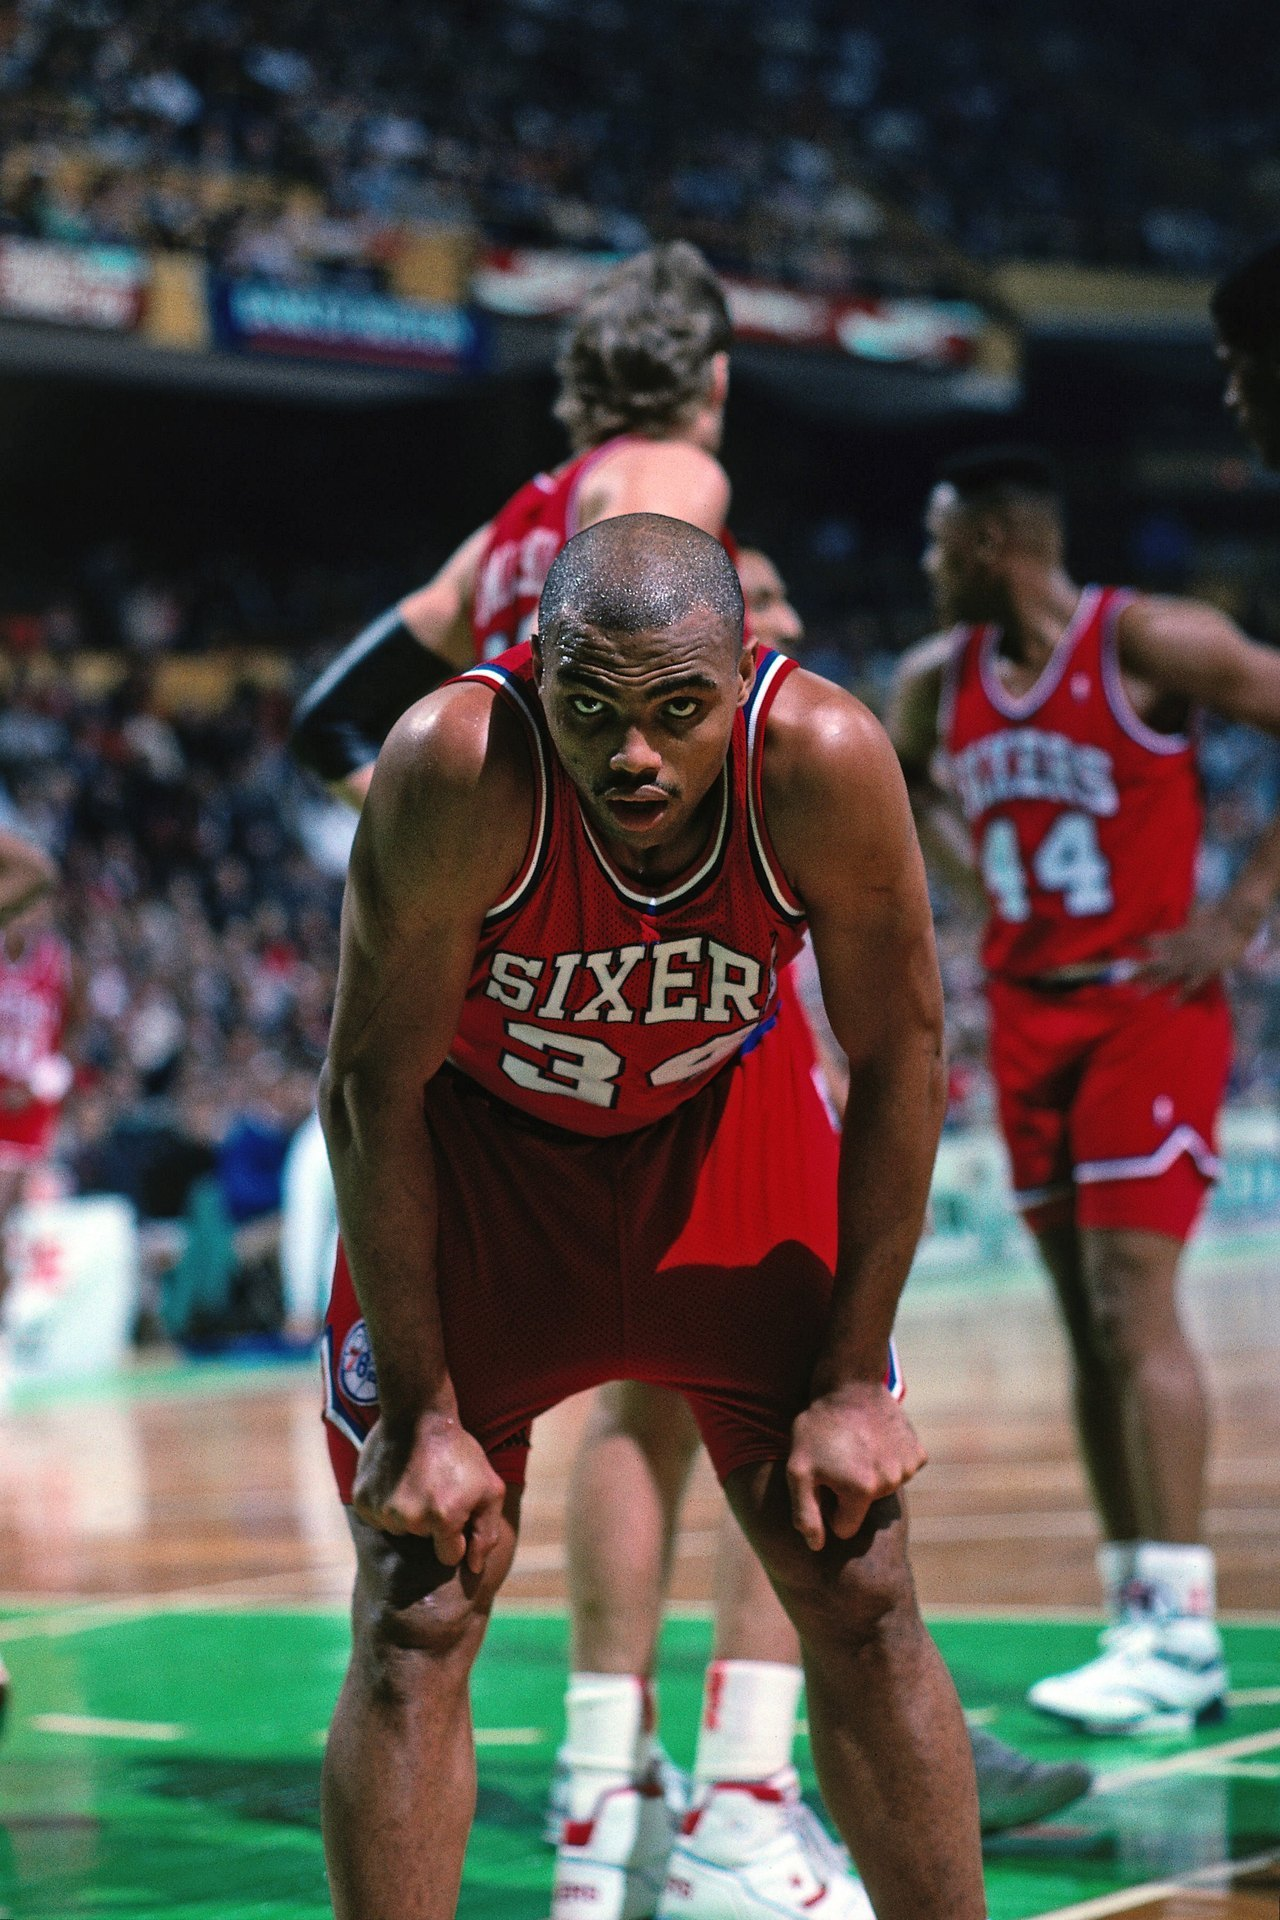 Photo: Sir Charles, The Round Mound of Rebound.